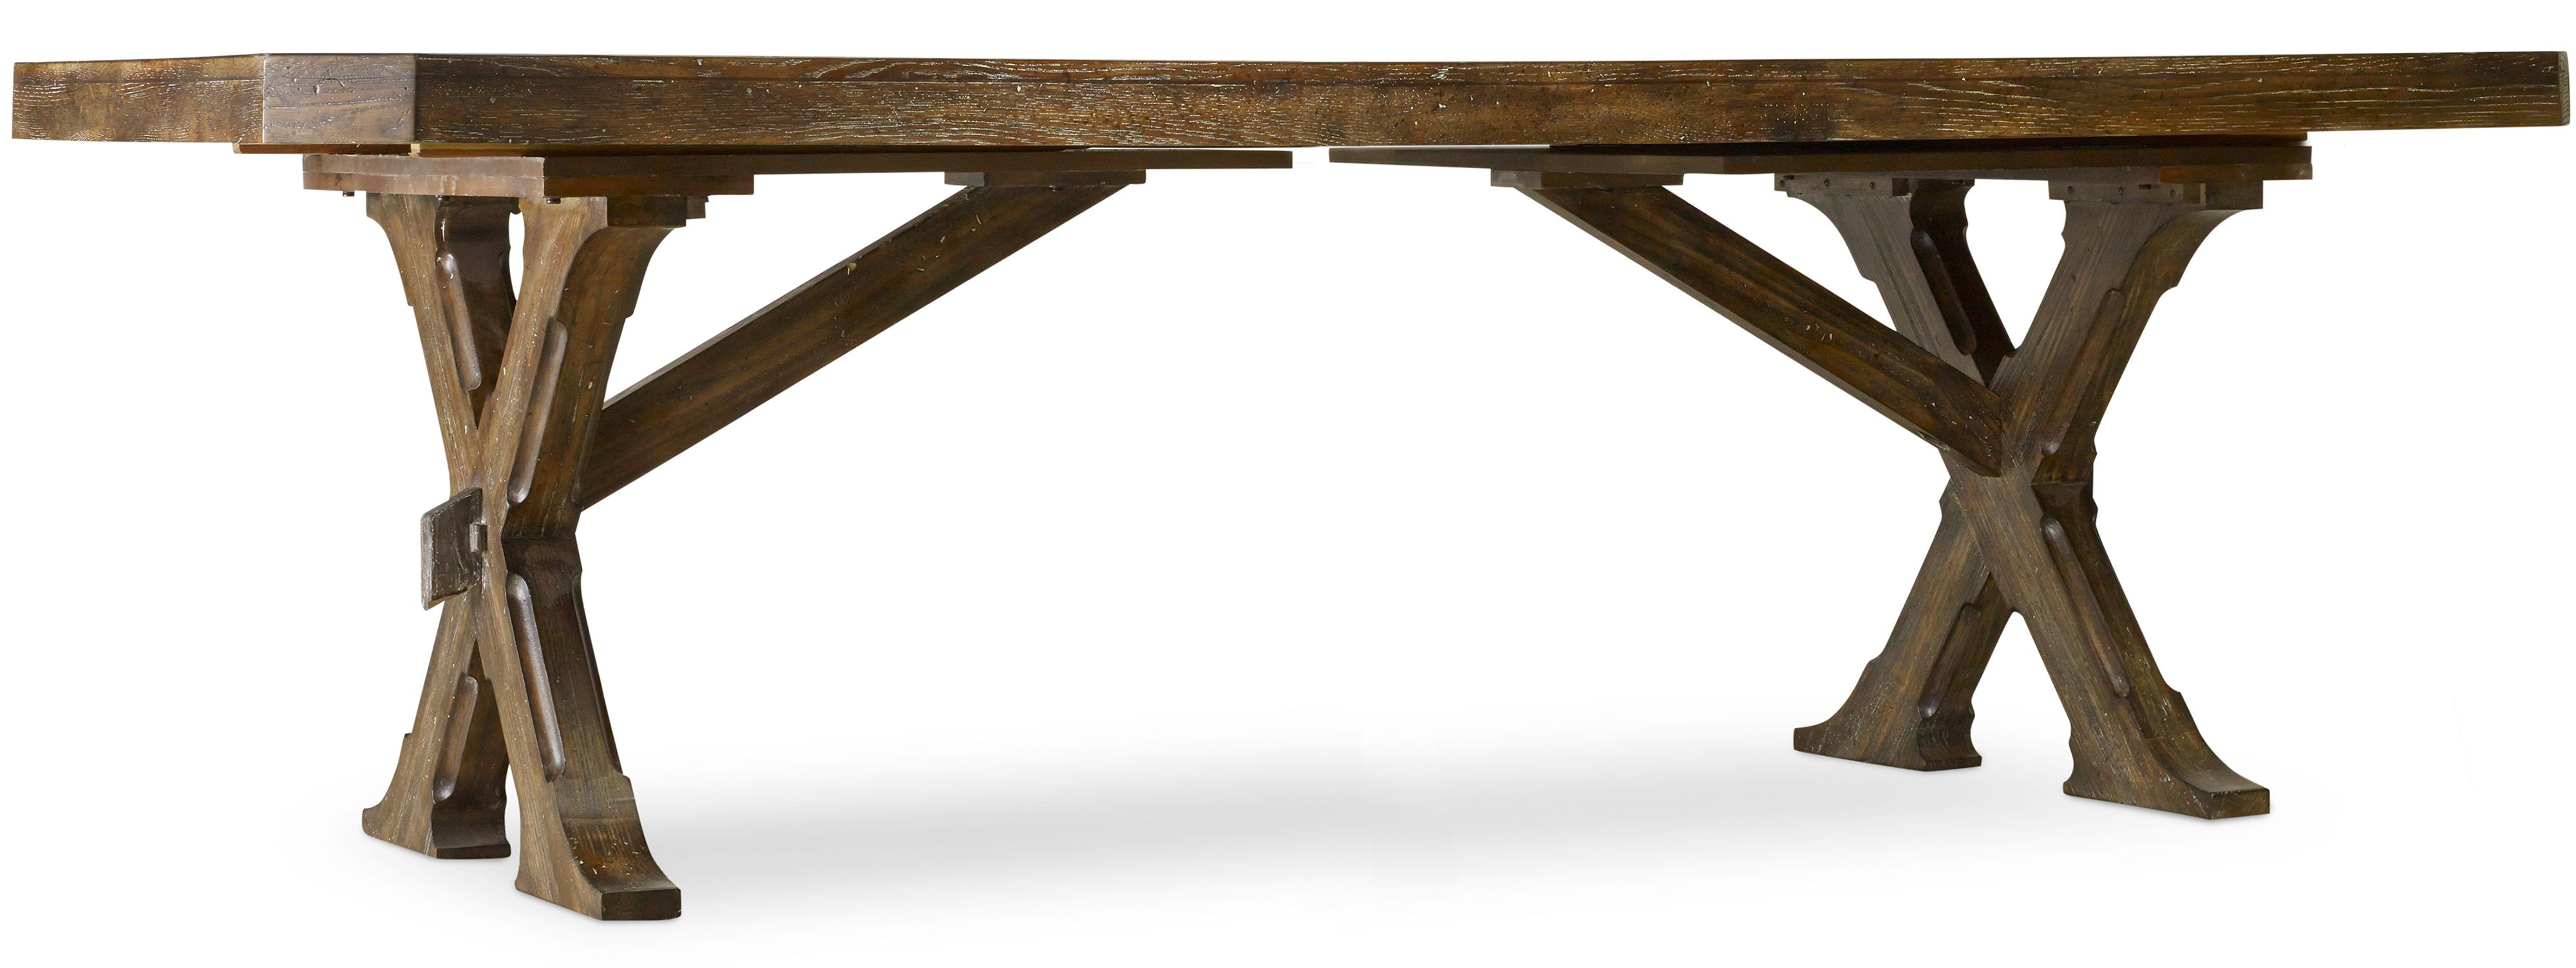 Hooker Furniture Willow Bend Rectangle Trestle Table - Item Number: 5343-75200